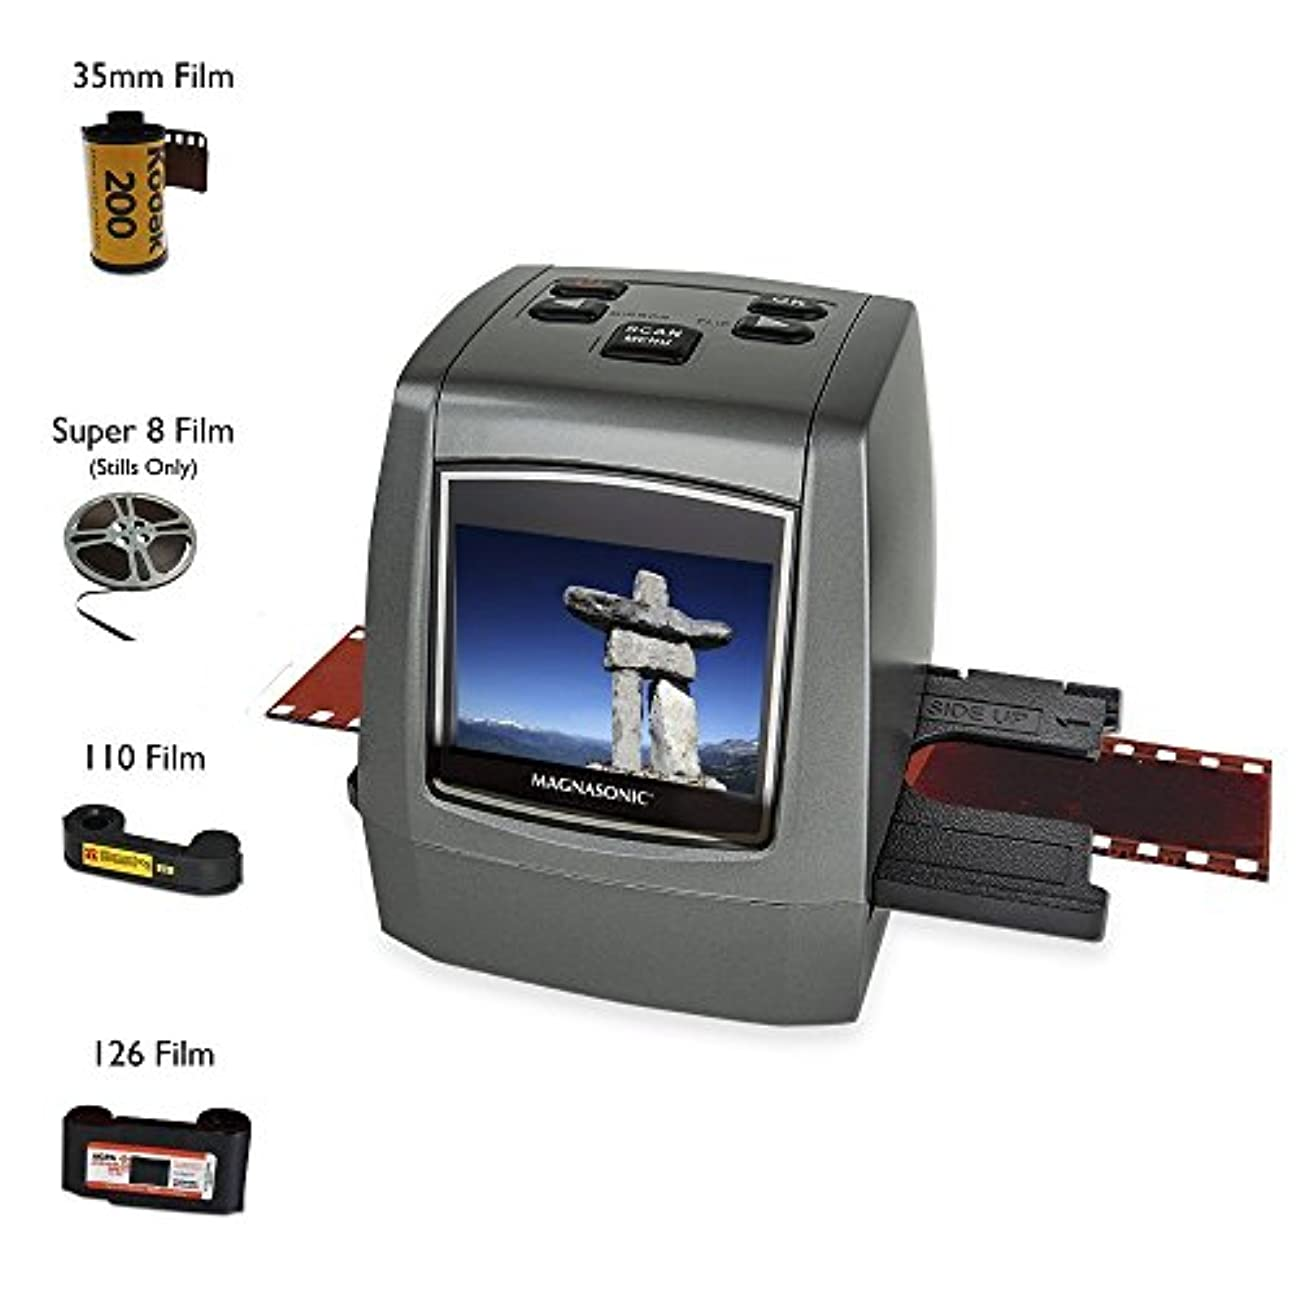 見通しドナウ川印象派Magnasonic All-In-One High Resolution 22MP Film Scanner Converts 126KPK/135/110/Super 8 Films Slides Negatives into Digital Photos Vibrant 2.4 LCD Screen Impressive 128MB Built-In Memory [並行輸入品]